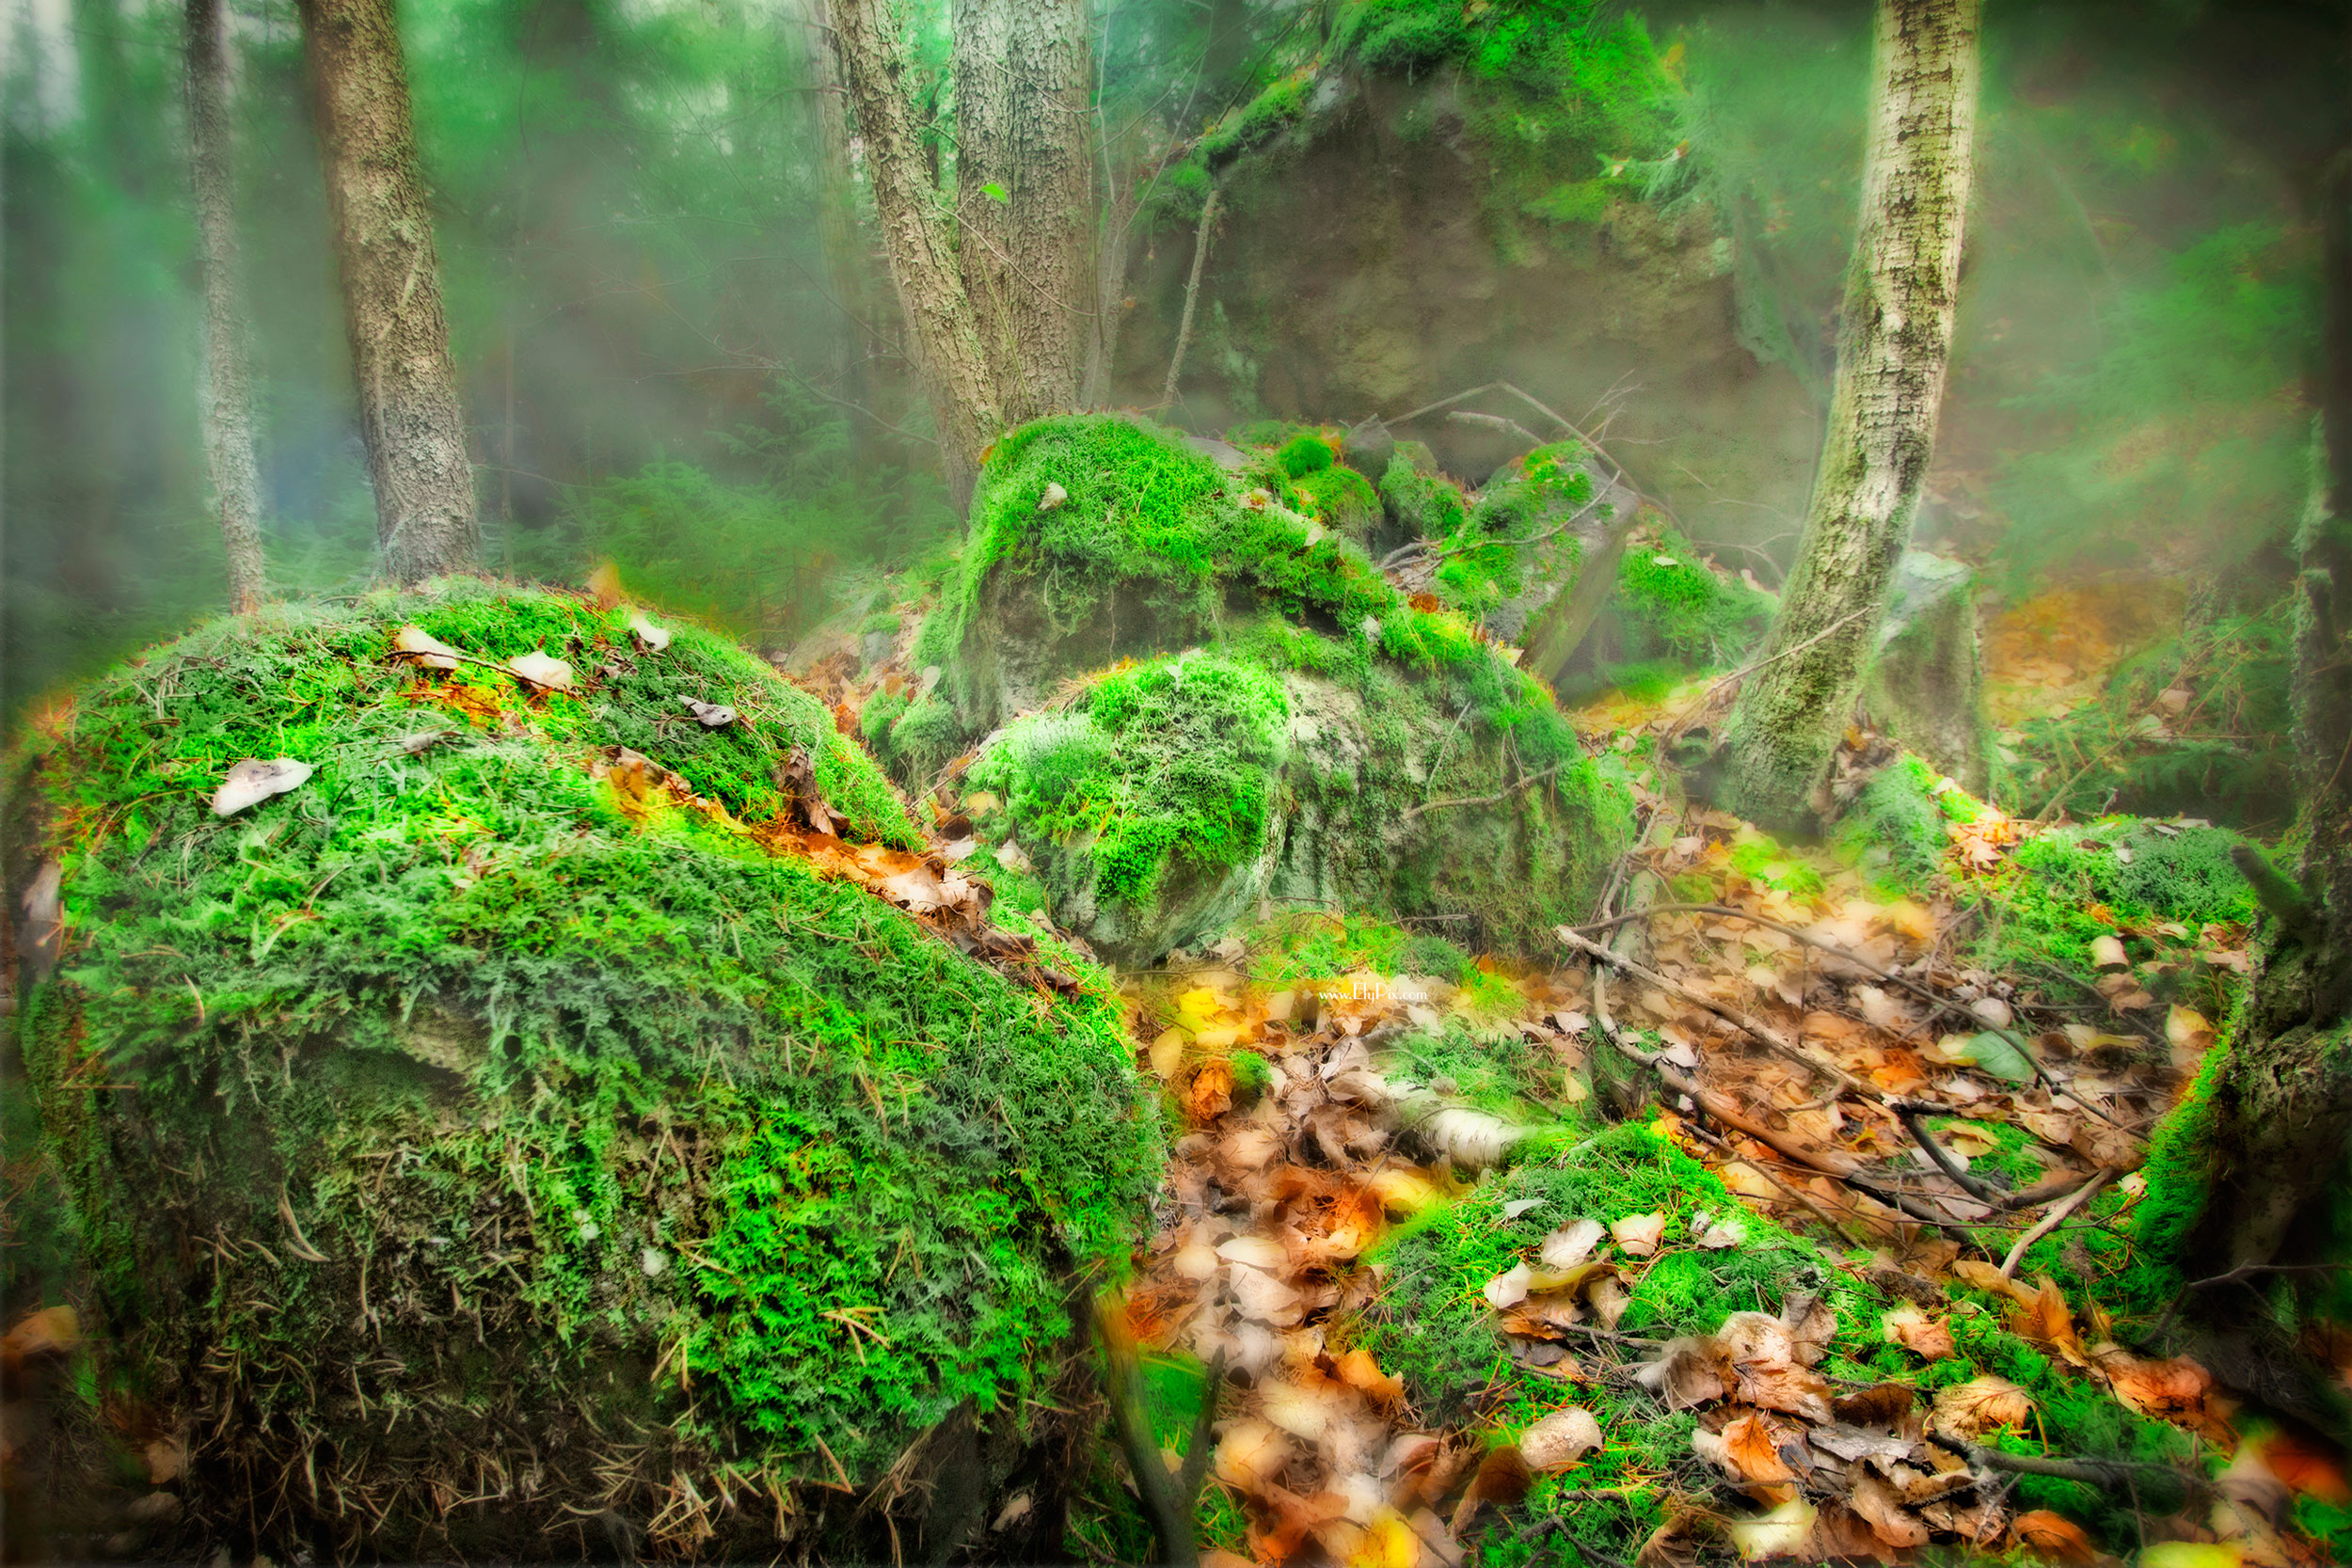 Green Moss in the Woods of the Boundary Waters Canoe Area Wilderness, by Roy Misonznick